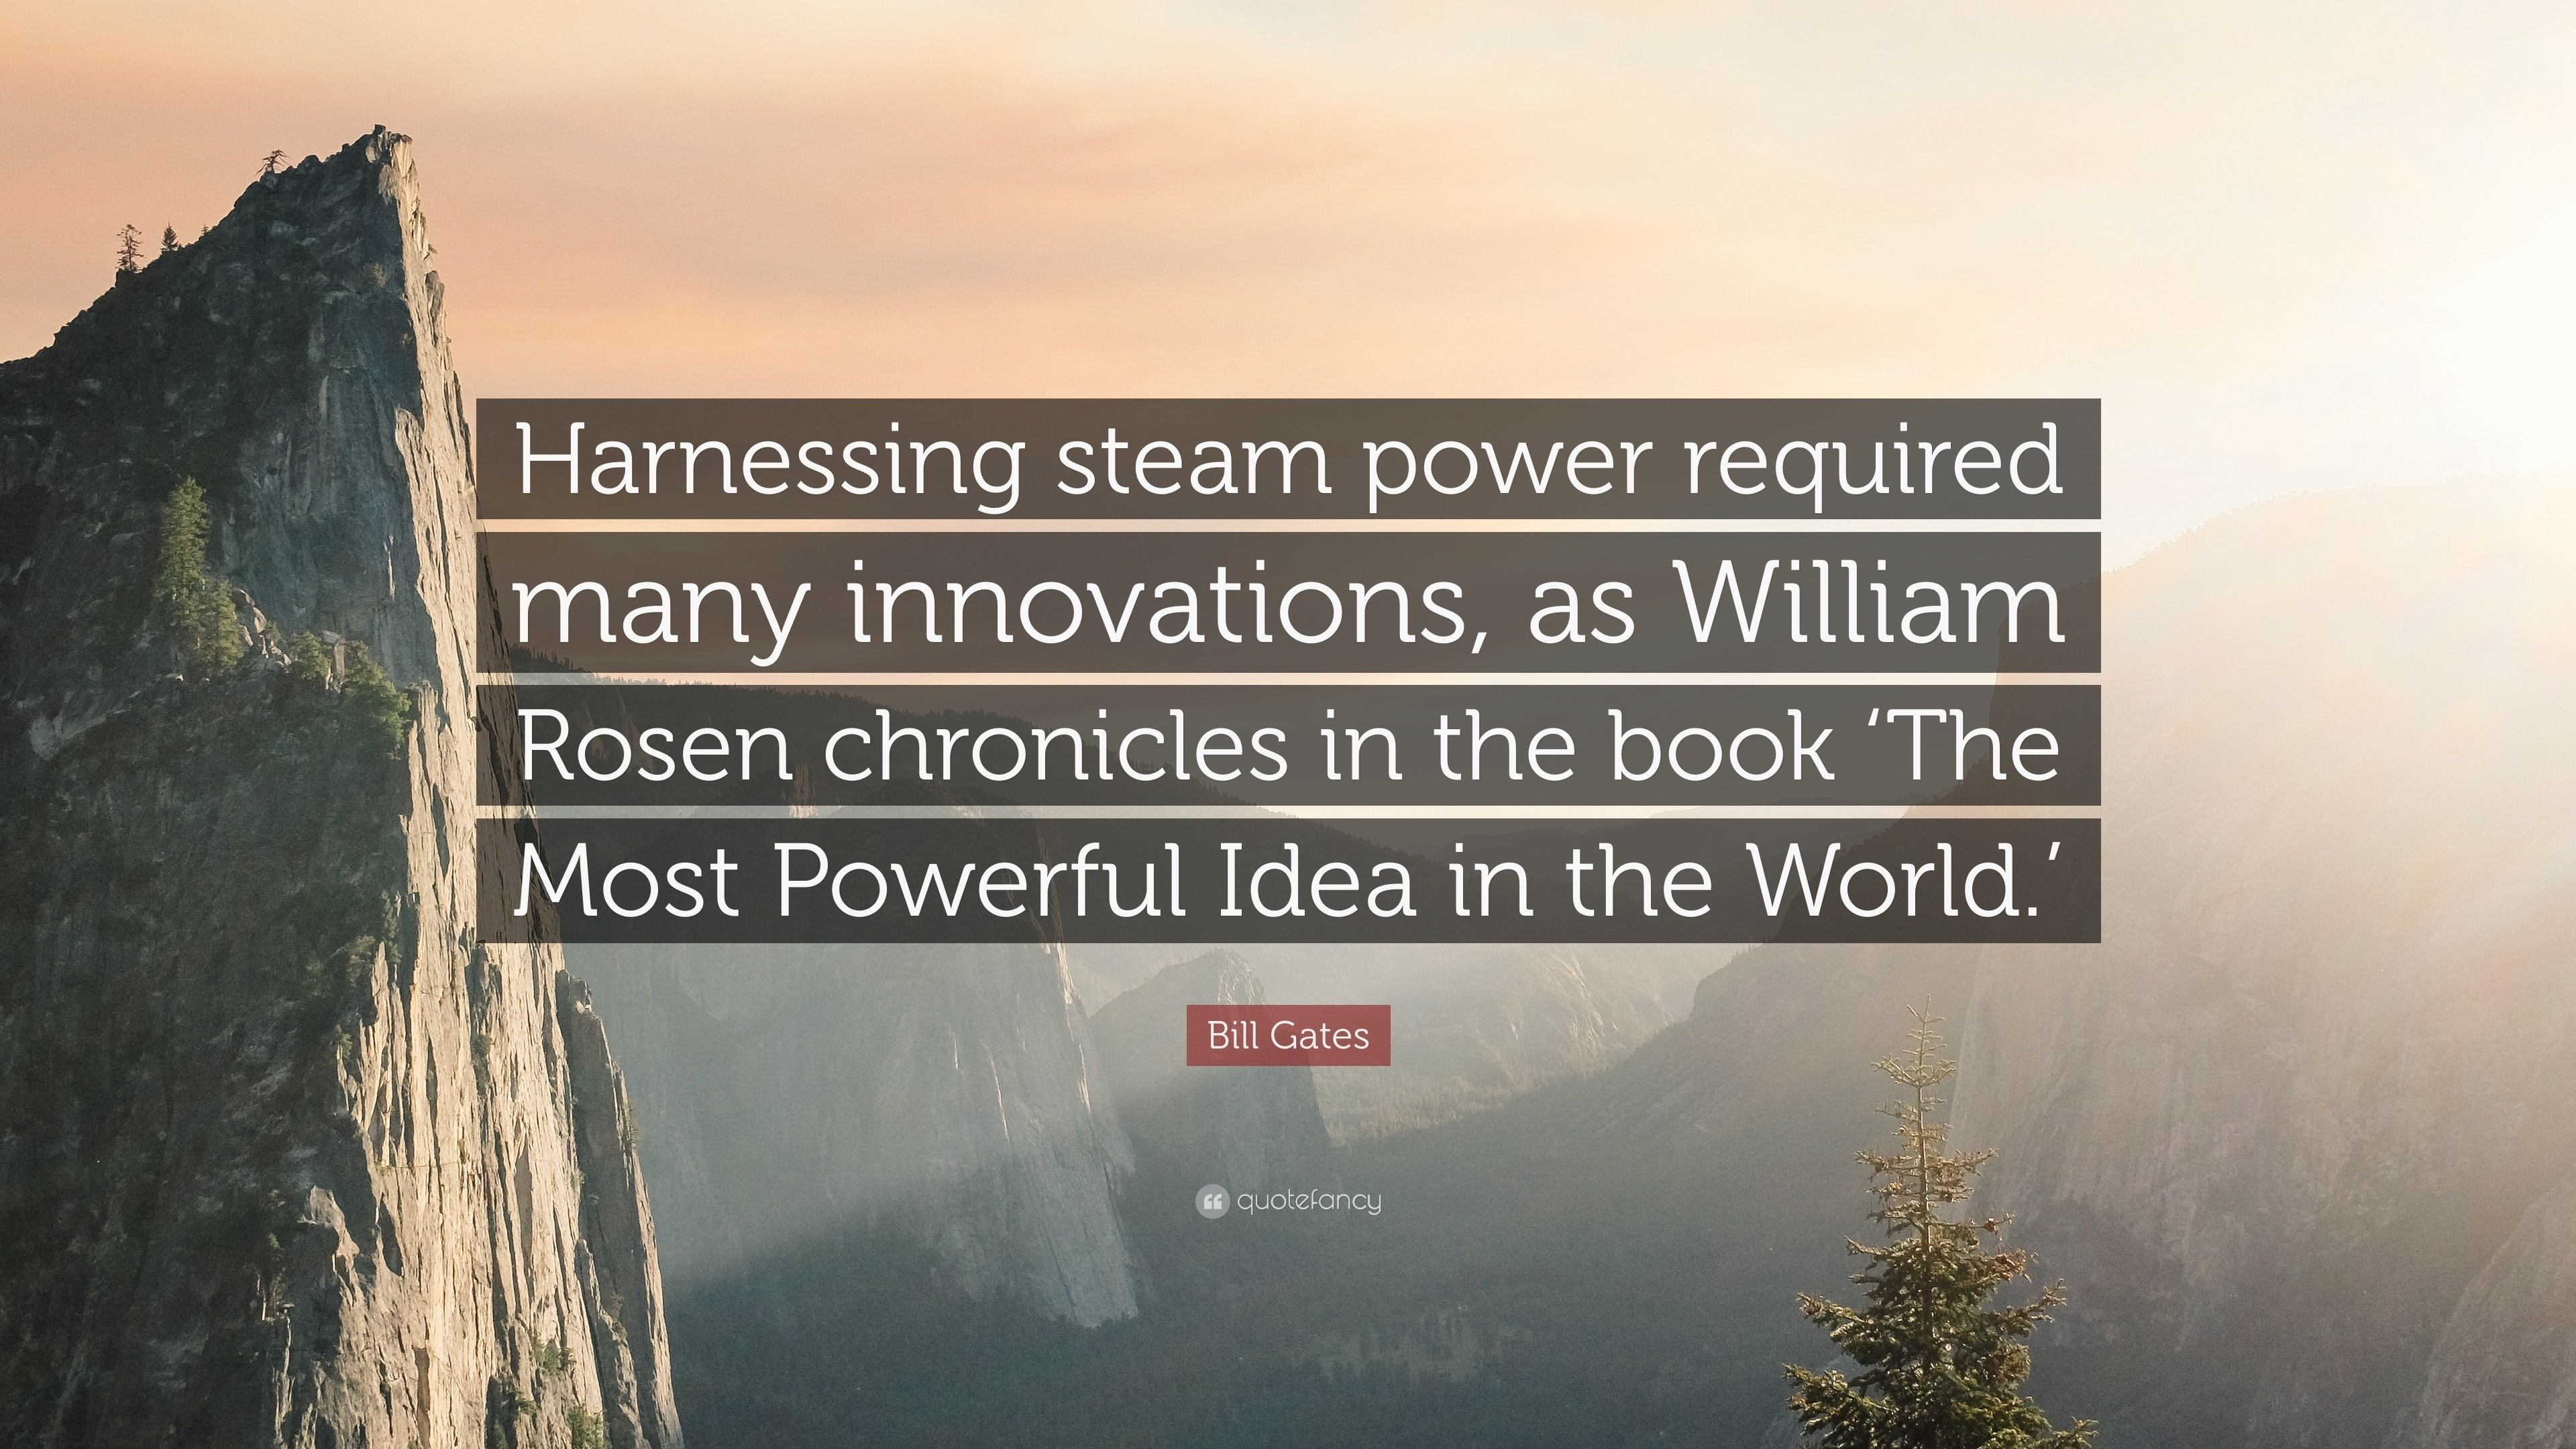 10 Amazing The Most Powerful Idea In The World bill gates quote harnessing steam power required many innovations